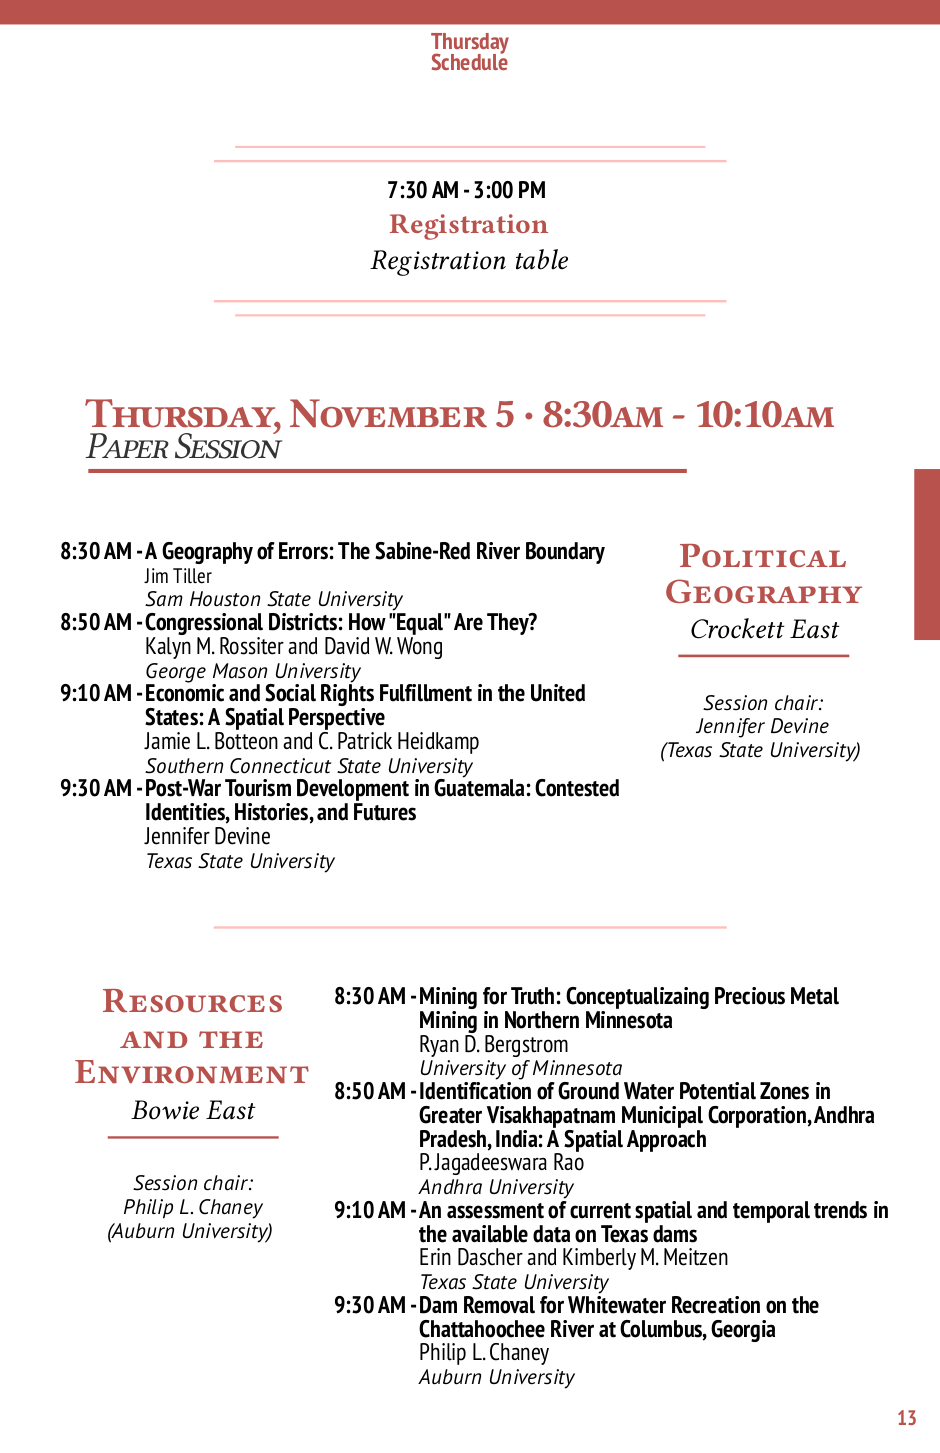 SWAAG/AGC 2015 conference program - Detailed program